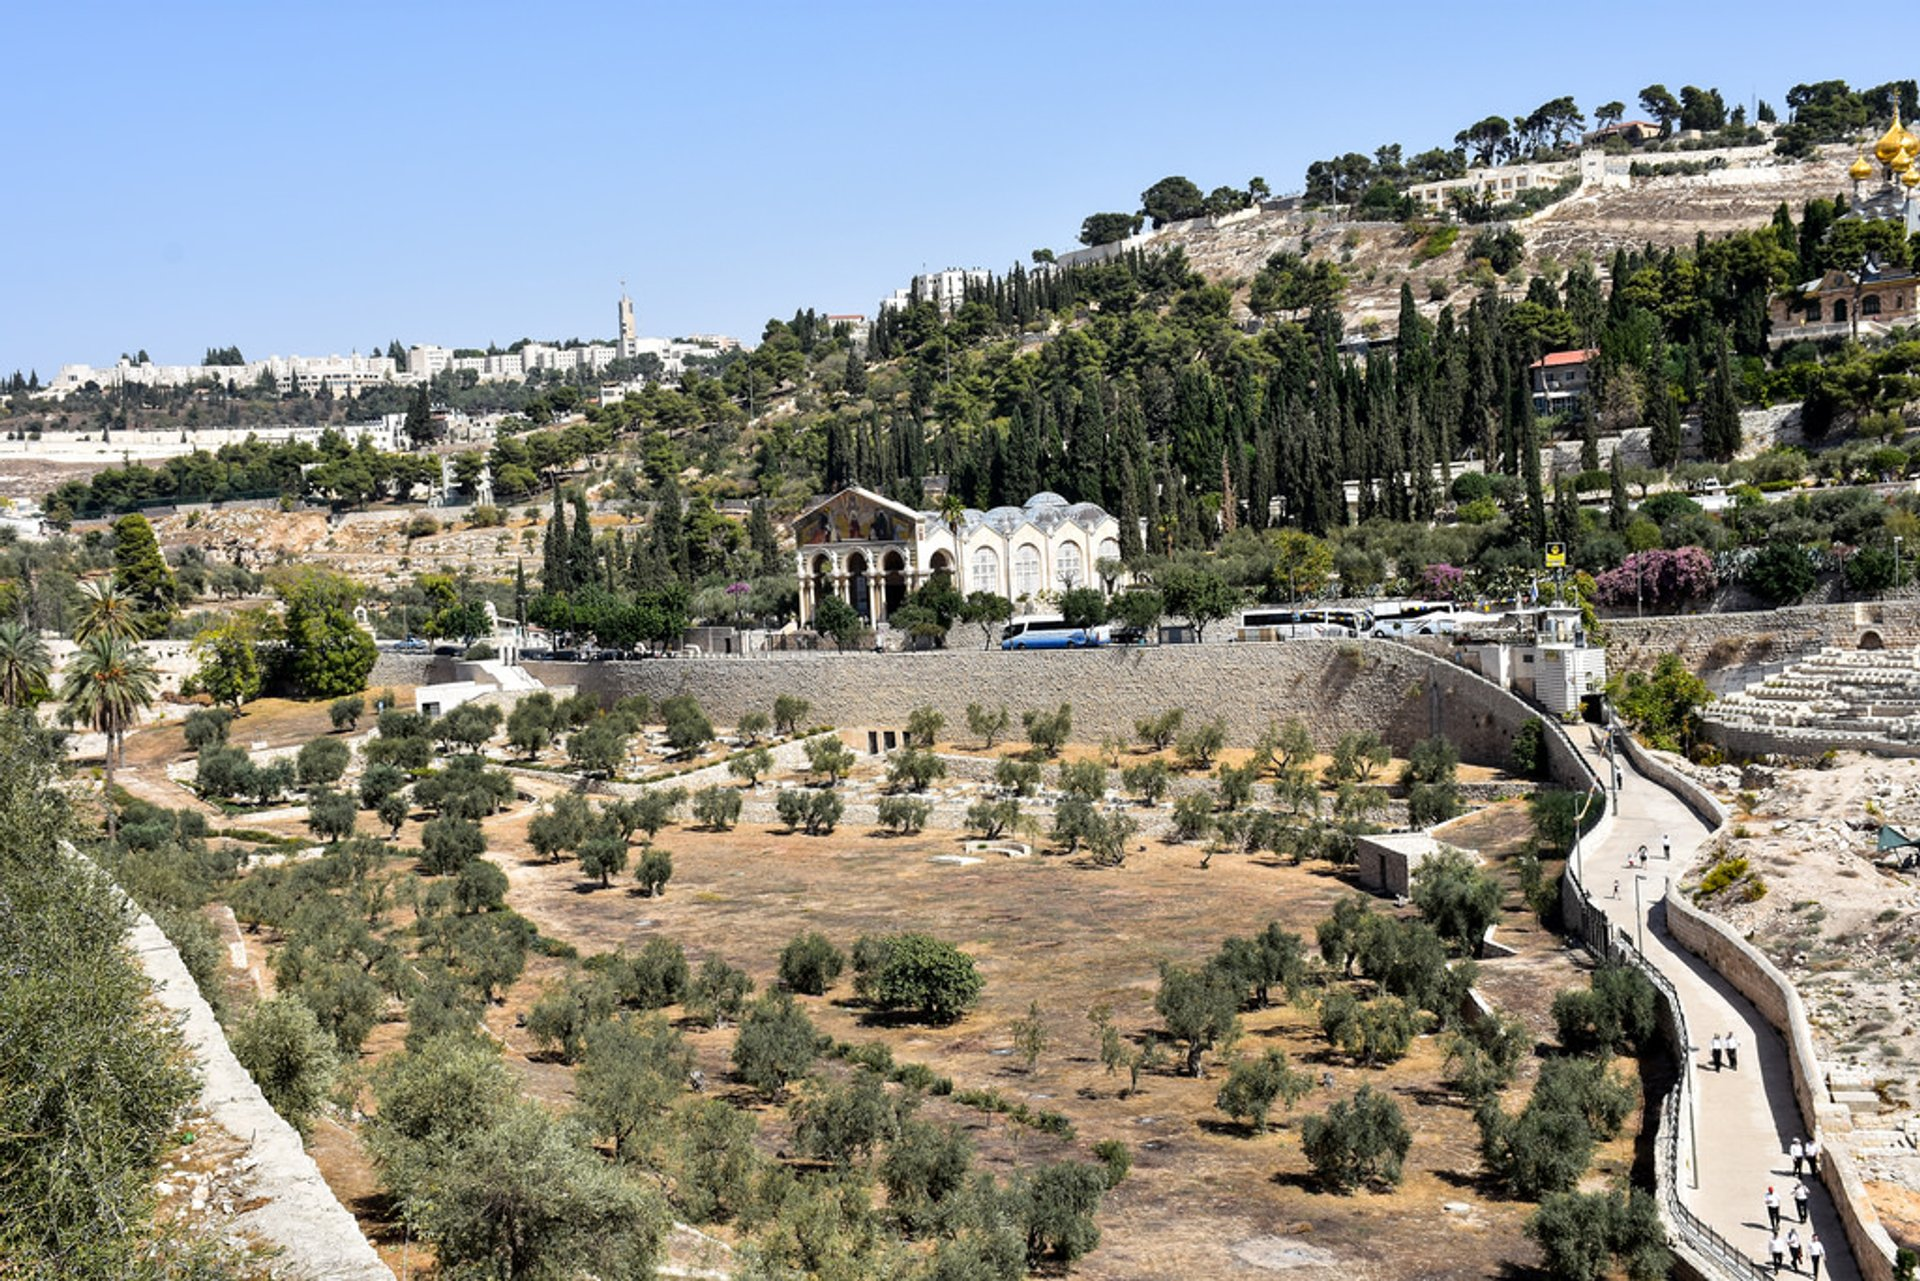 The Kidron Valley 2020